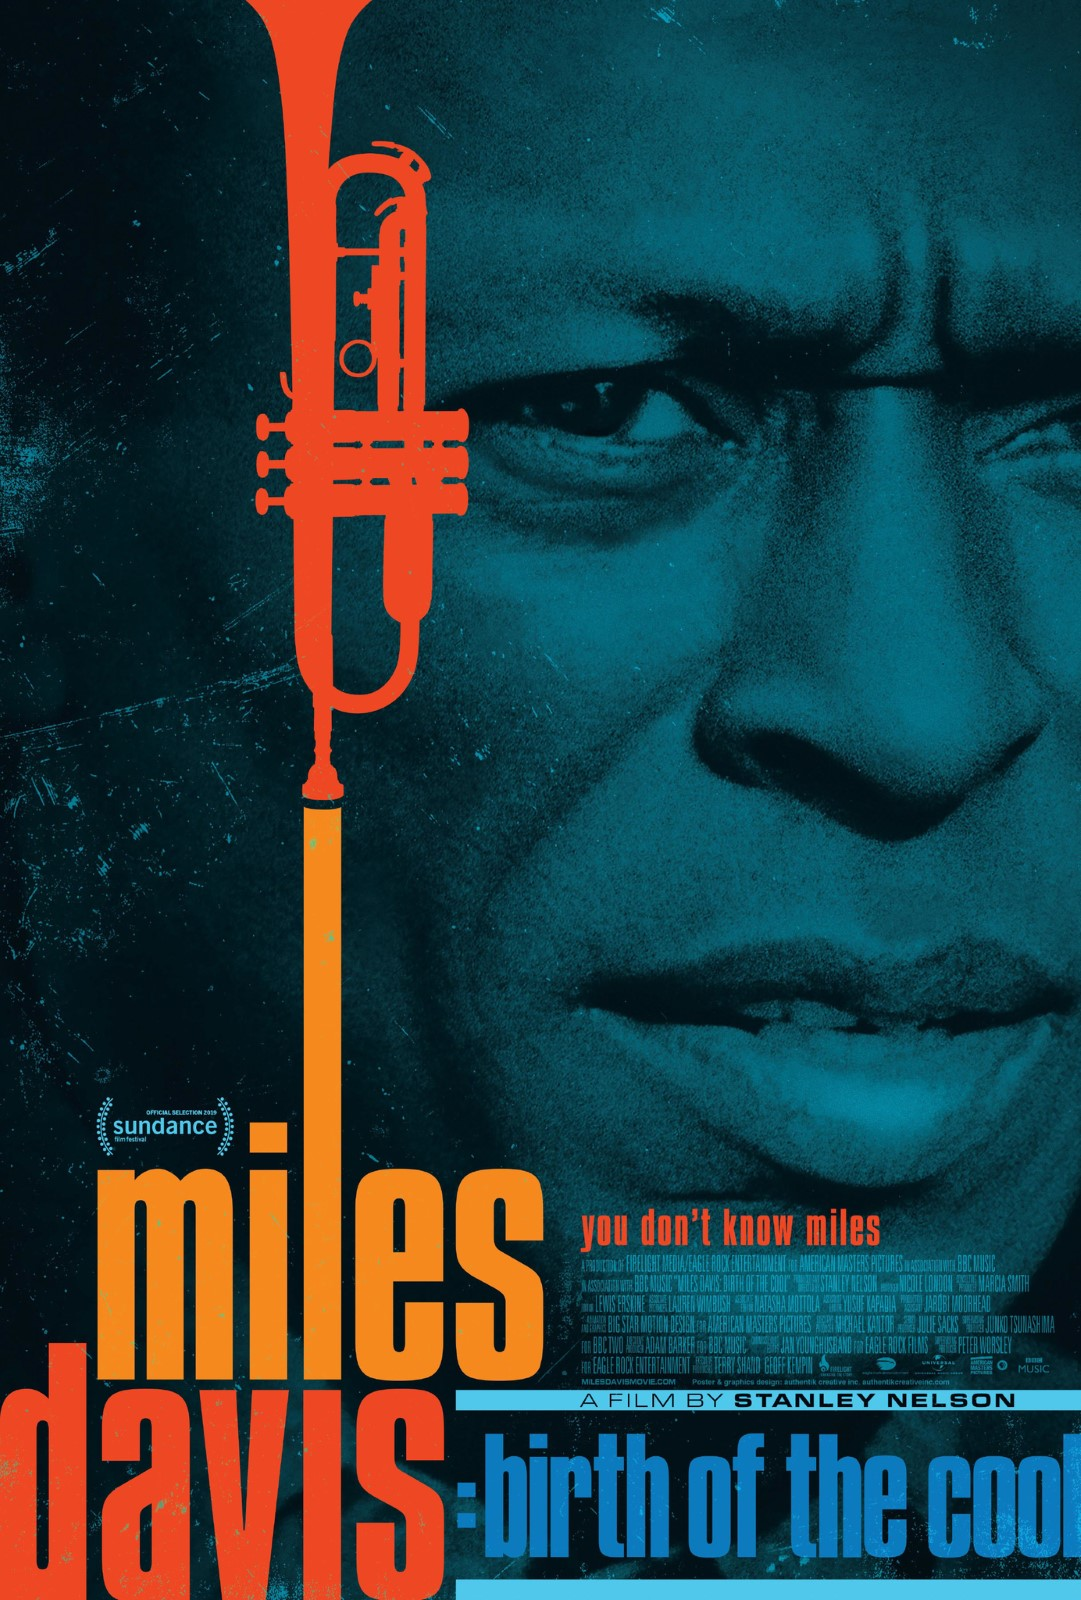 Bildergebnis für miles davis birth of the cool plakat